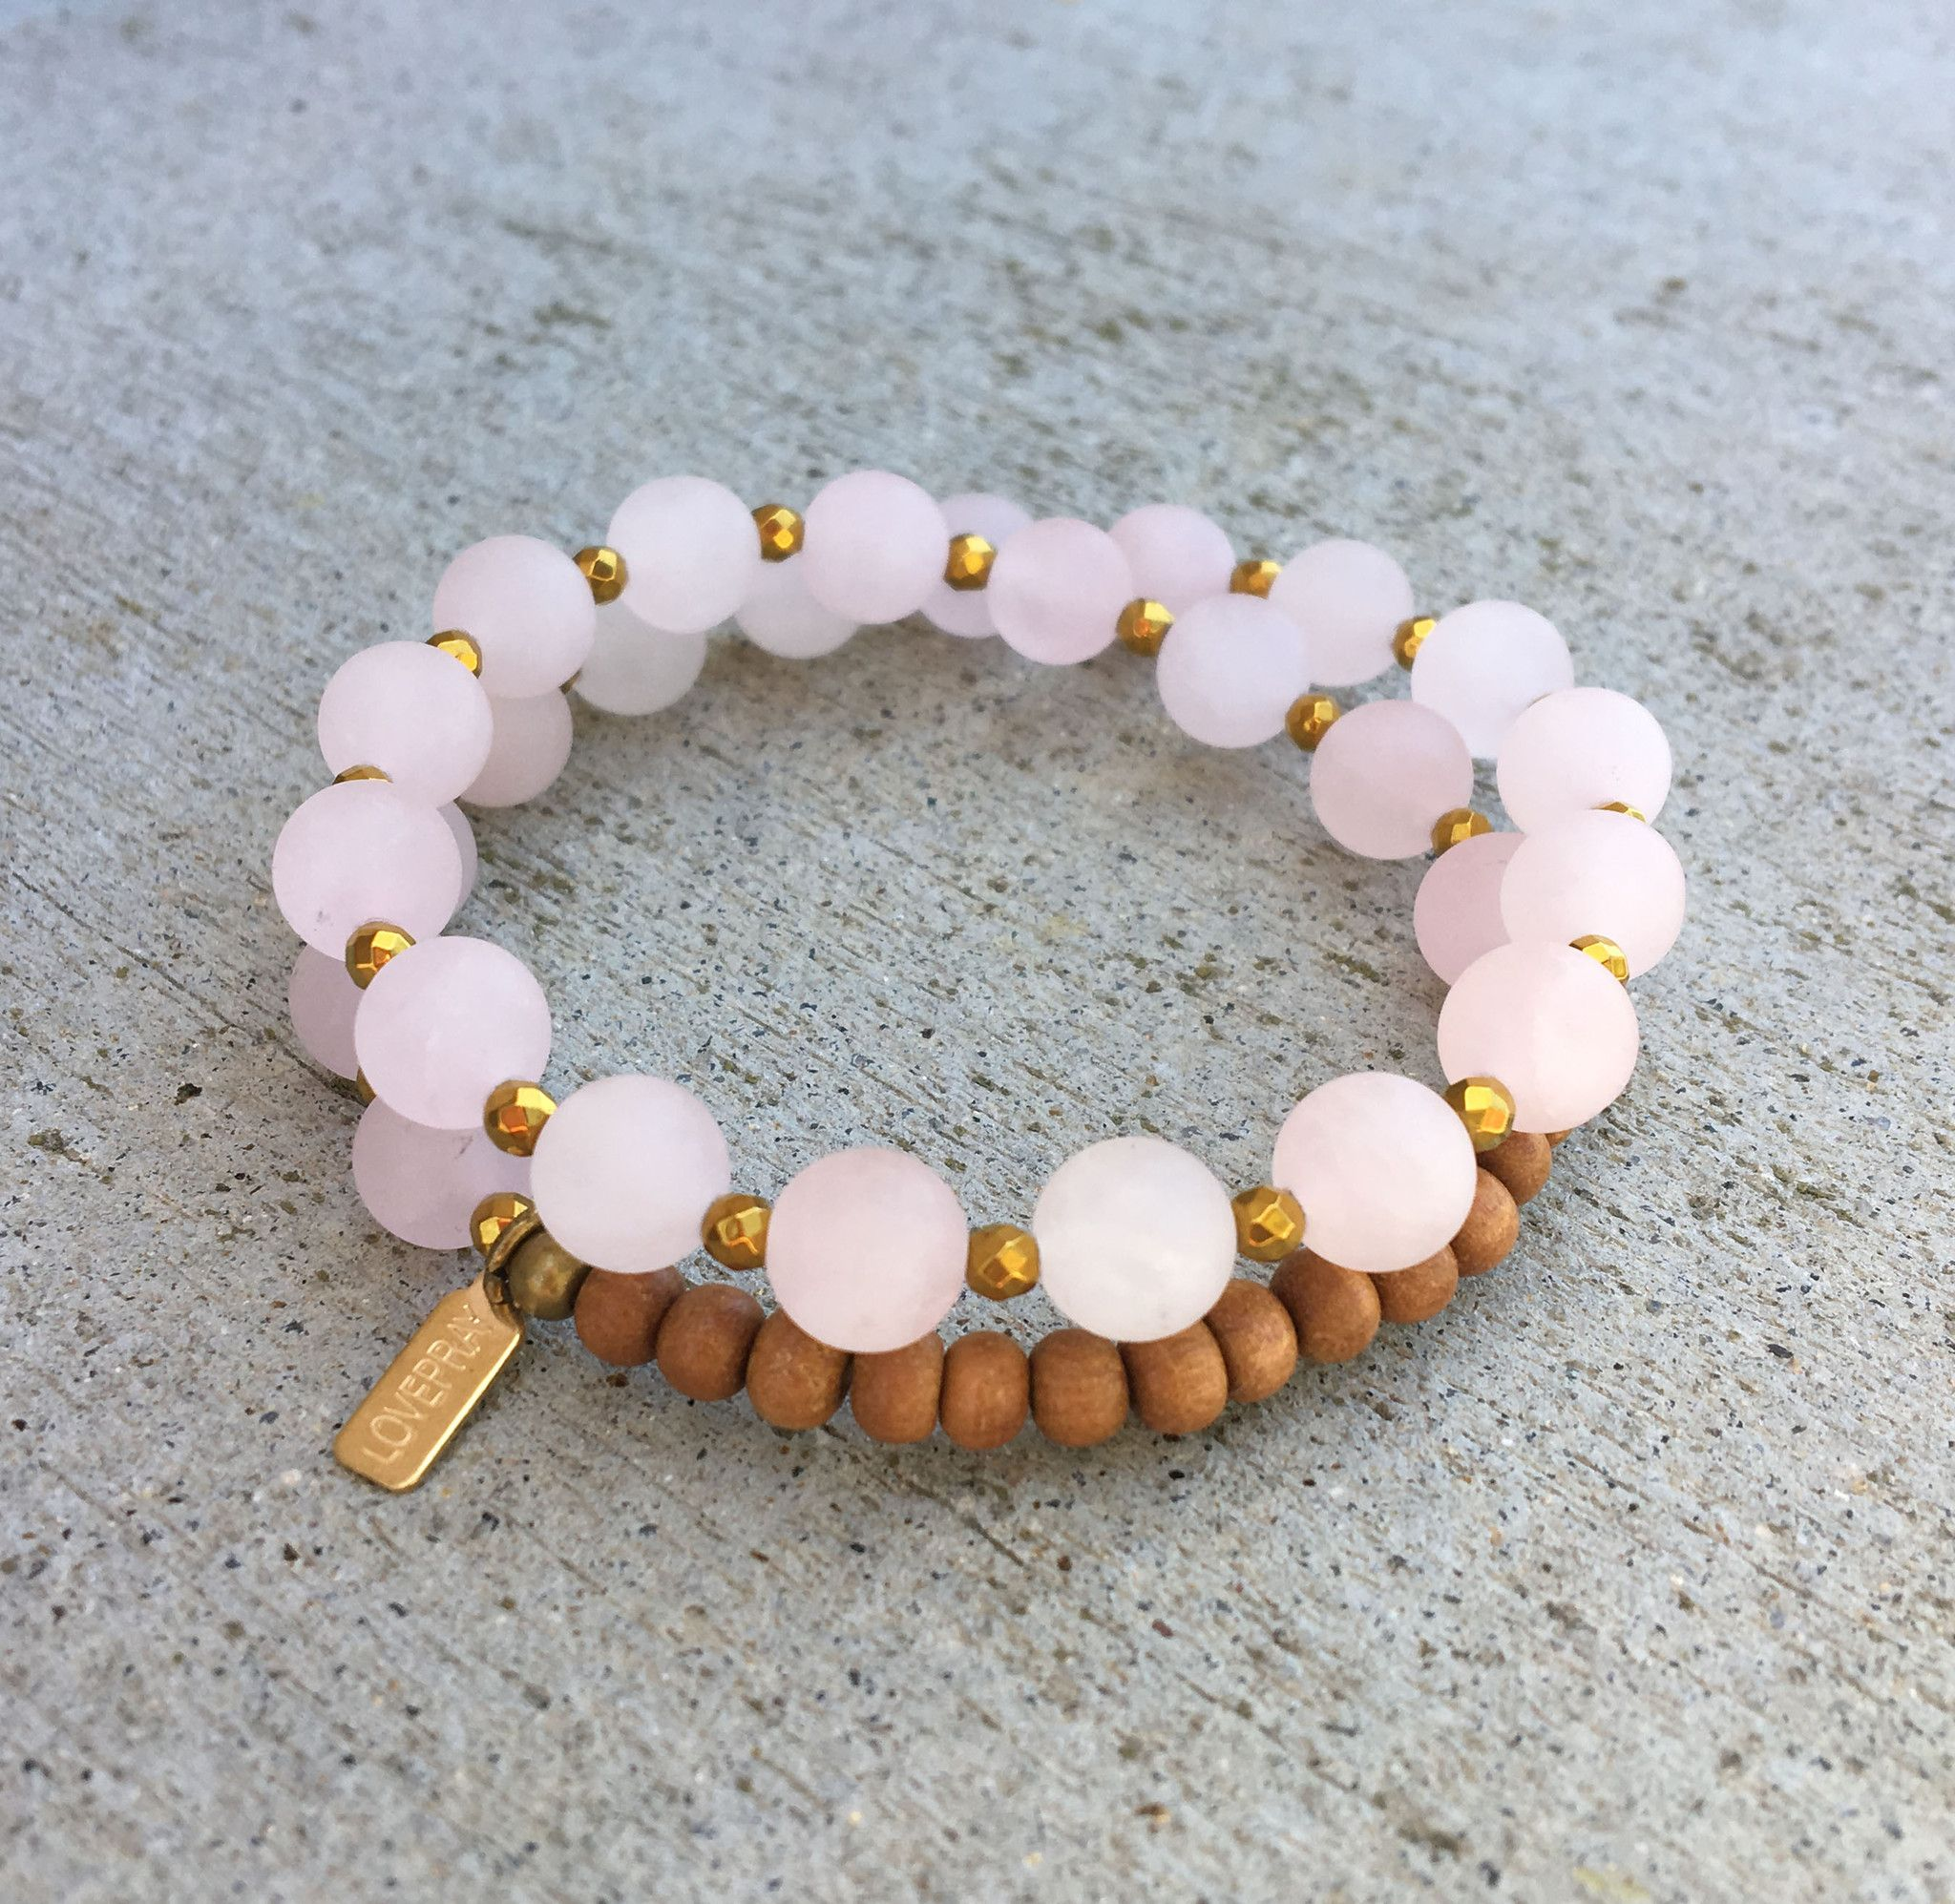 Matte Rose Quartz And Sandalwood Love Healing 27 Bead Wrist Mala Wrap